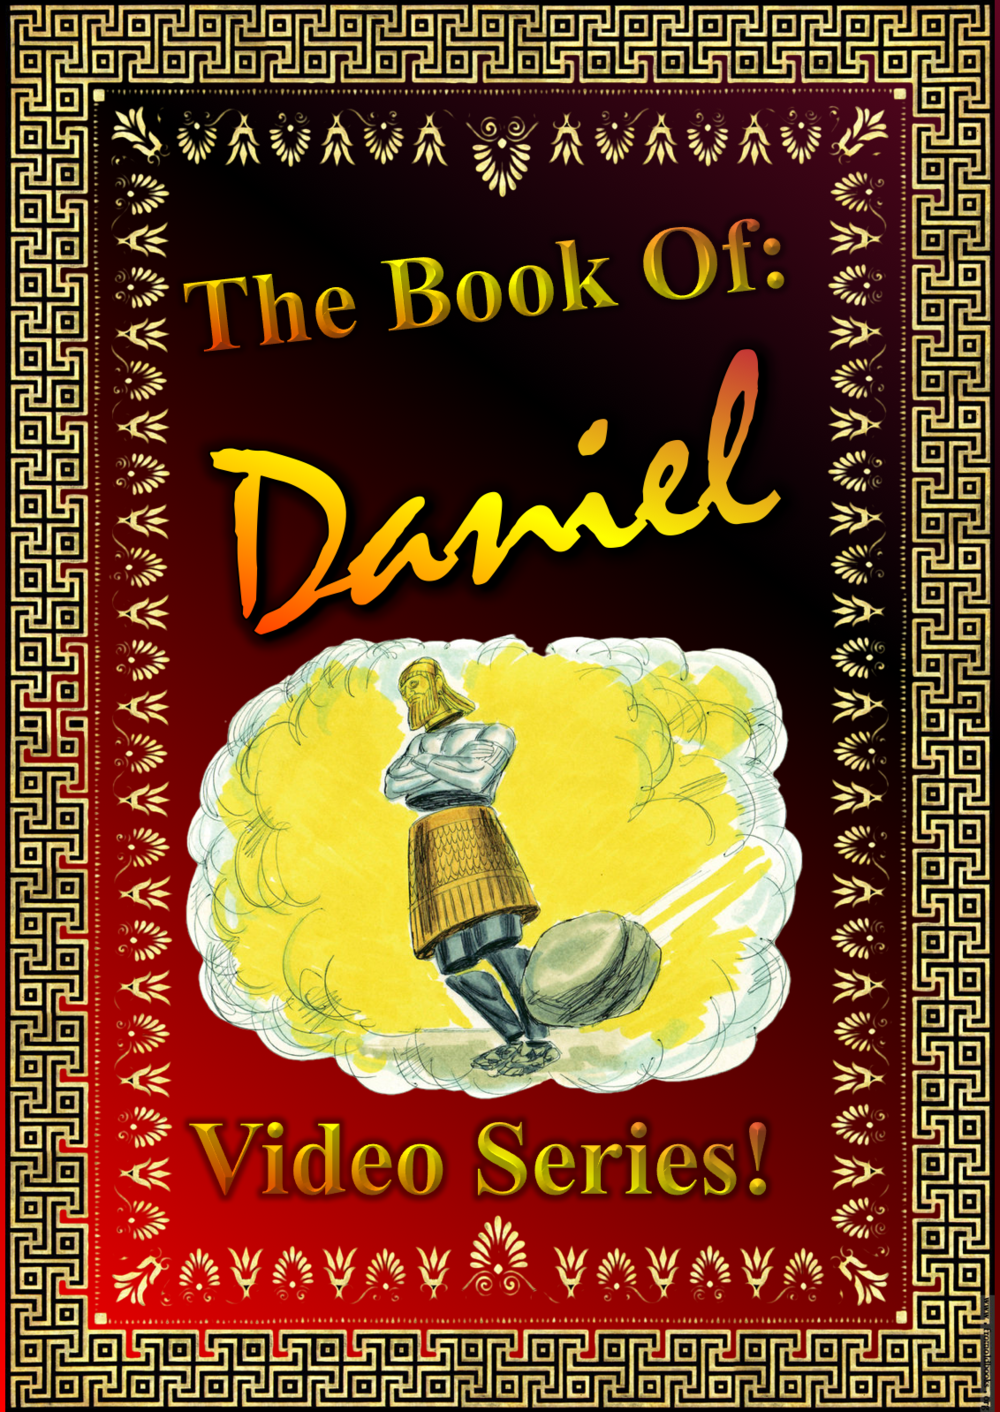 Free Video Series on Daniel!